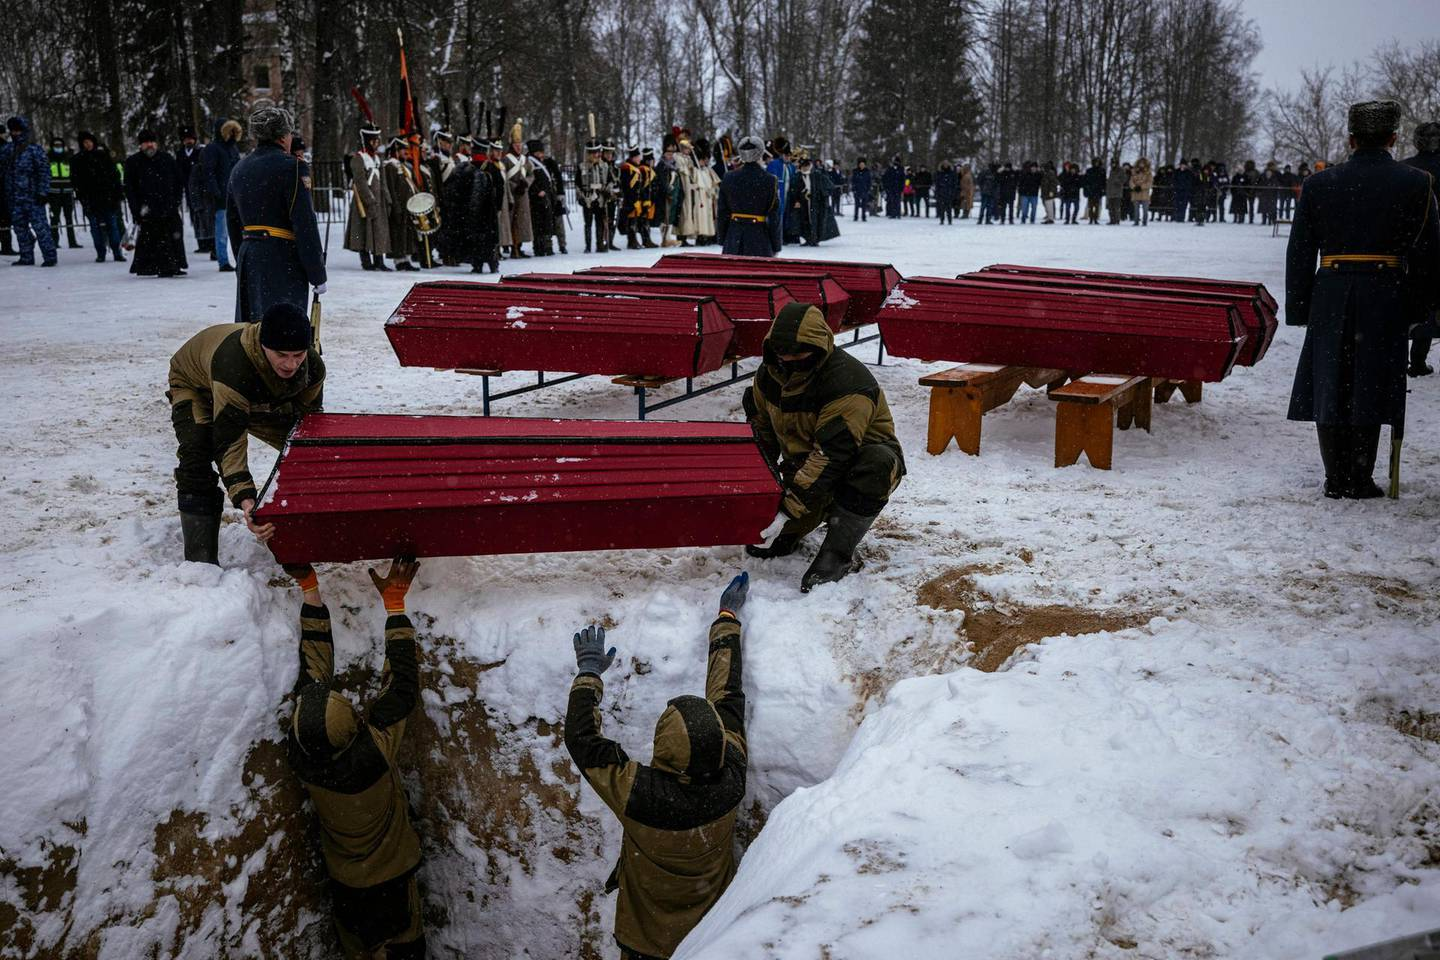 Municipal employees hold a coffin containing remains of Russian and French soldiers during a burial ceremony in the western town of Vyazma on February 13, 2021. Officials and descendants of 19th-century Russian and French military leaders gathered for a windswept ceremony in the western town of Vyazma to re-bury the remains of 126 people killed in one of the bloodiest battles of Napoleon's Russian campaign. / AFP / Dimitar DILKOFF